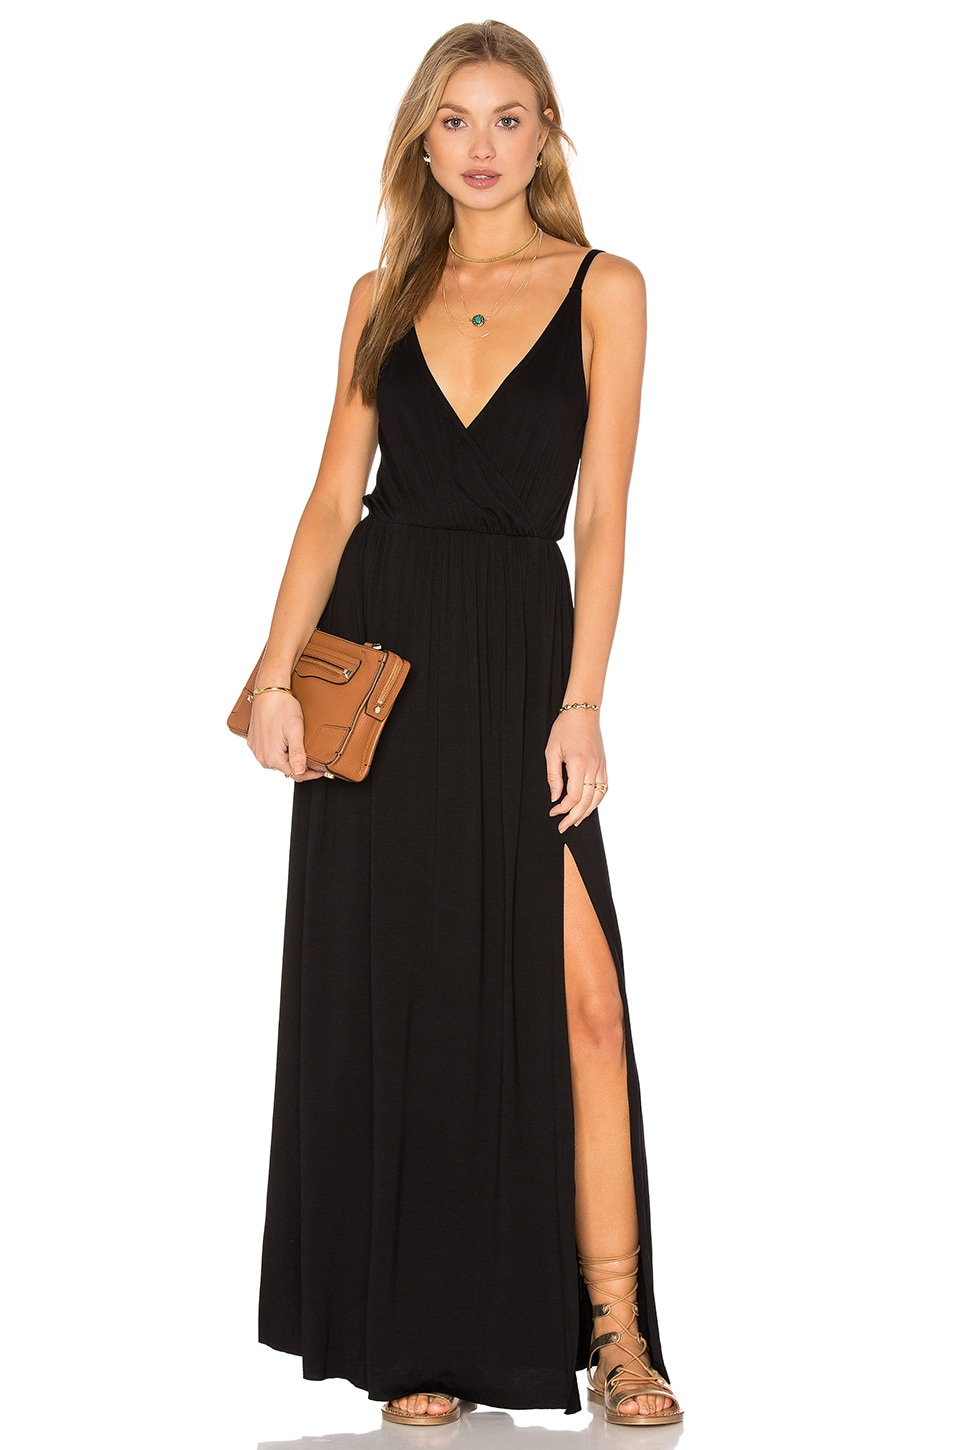 Clayton Aniya Maxi Dress in Black